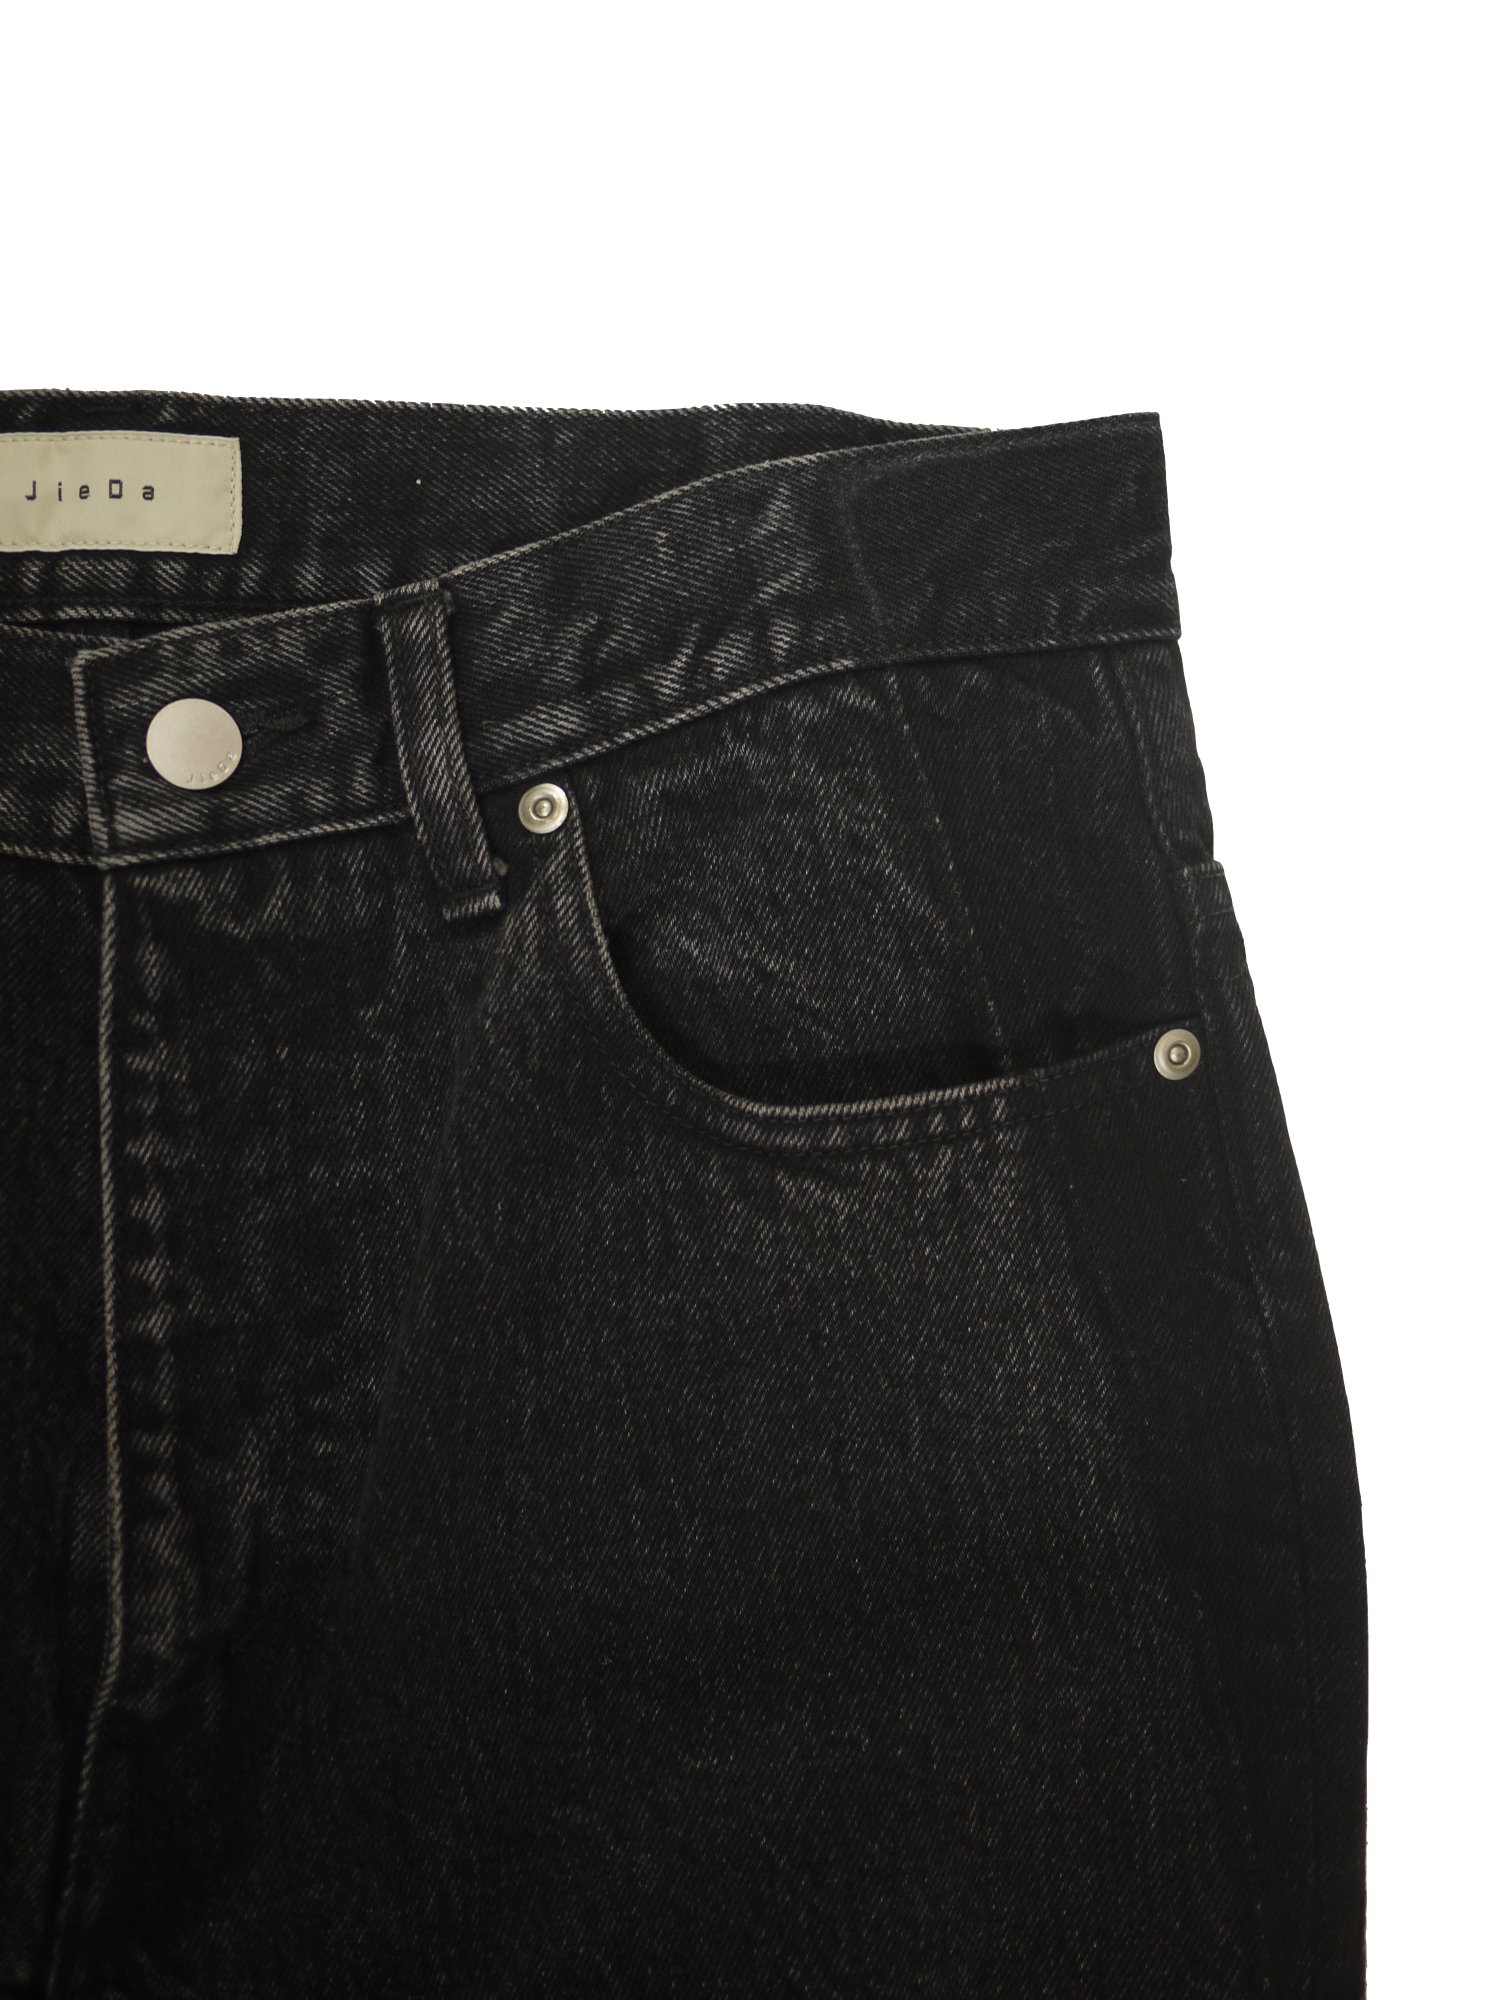 JieDa<br />USED FLARE DENIM PANTS / BLACK<img class='new_mark_img2' src='https://img.shop-pro.jp/img/new/icons14.gif' style='border:none;display:inline;margin:0px;padding:0px;width:auto;' />